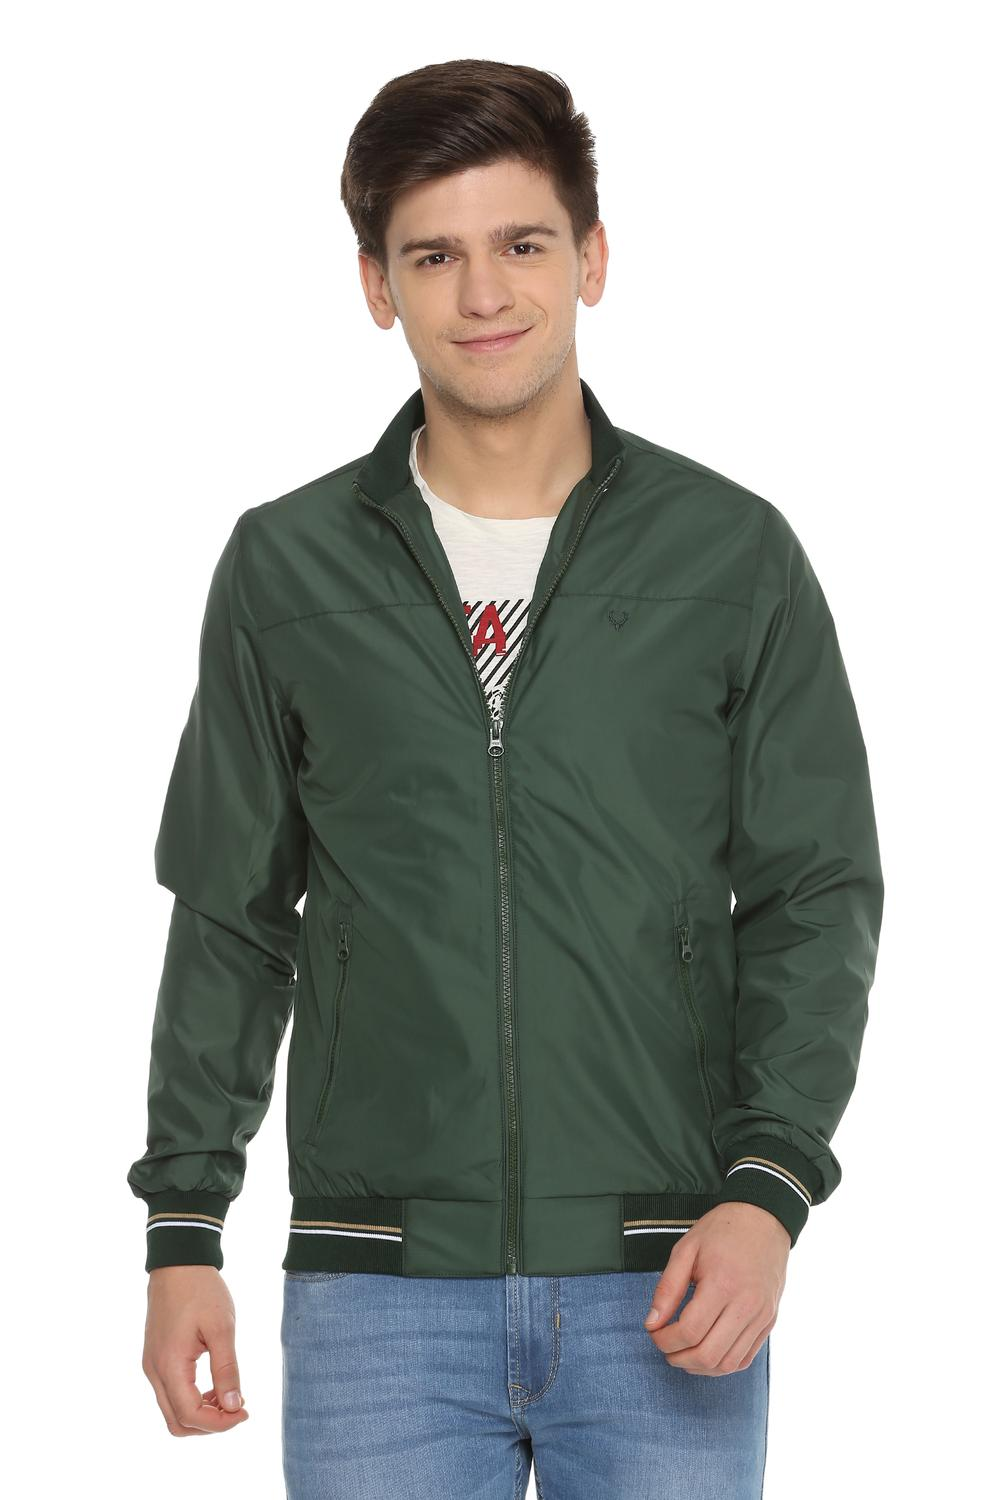 8c6a4ee36a2c1 Allen Solly Jackets, Allen Solly Green Jacket for Men at Allensolly.com